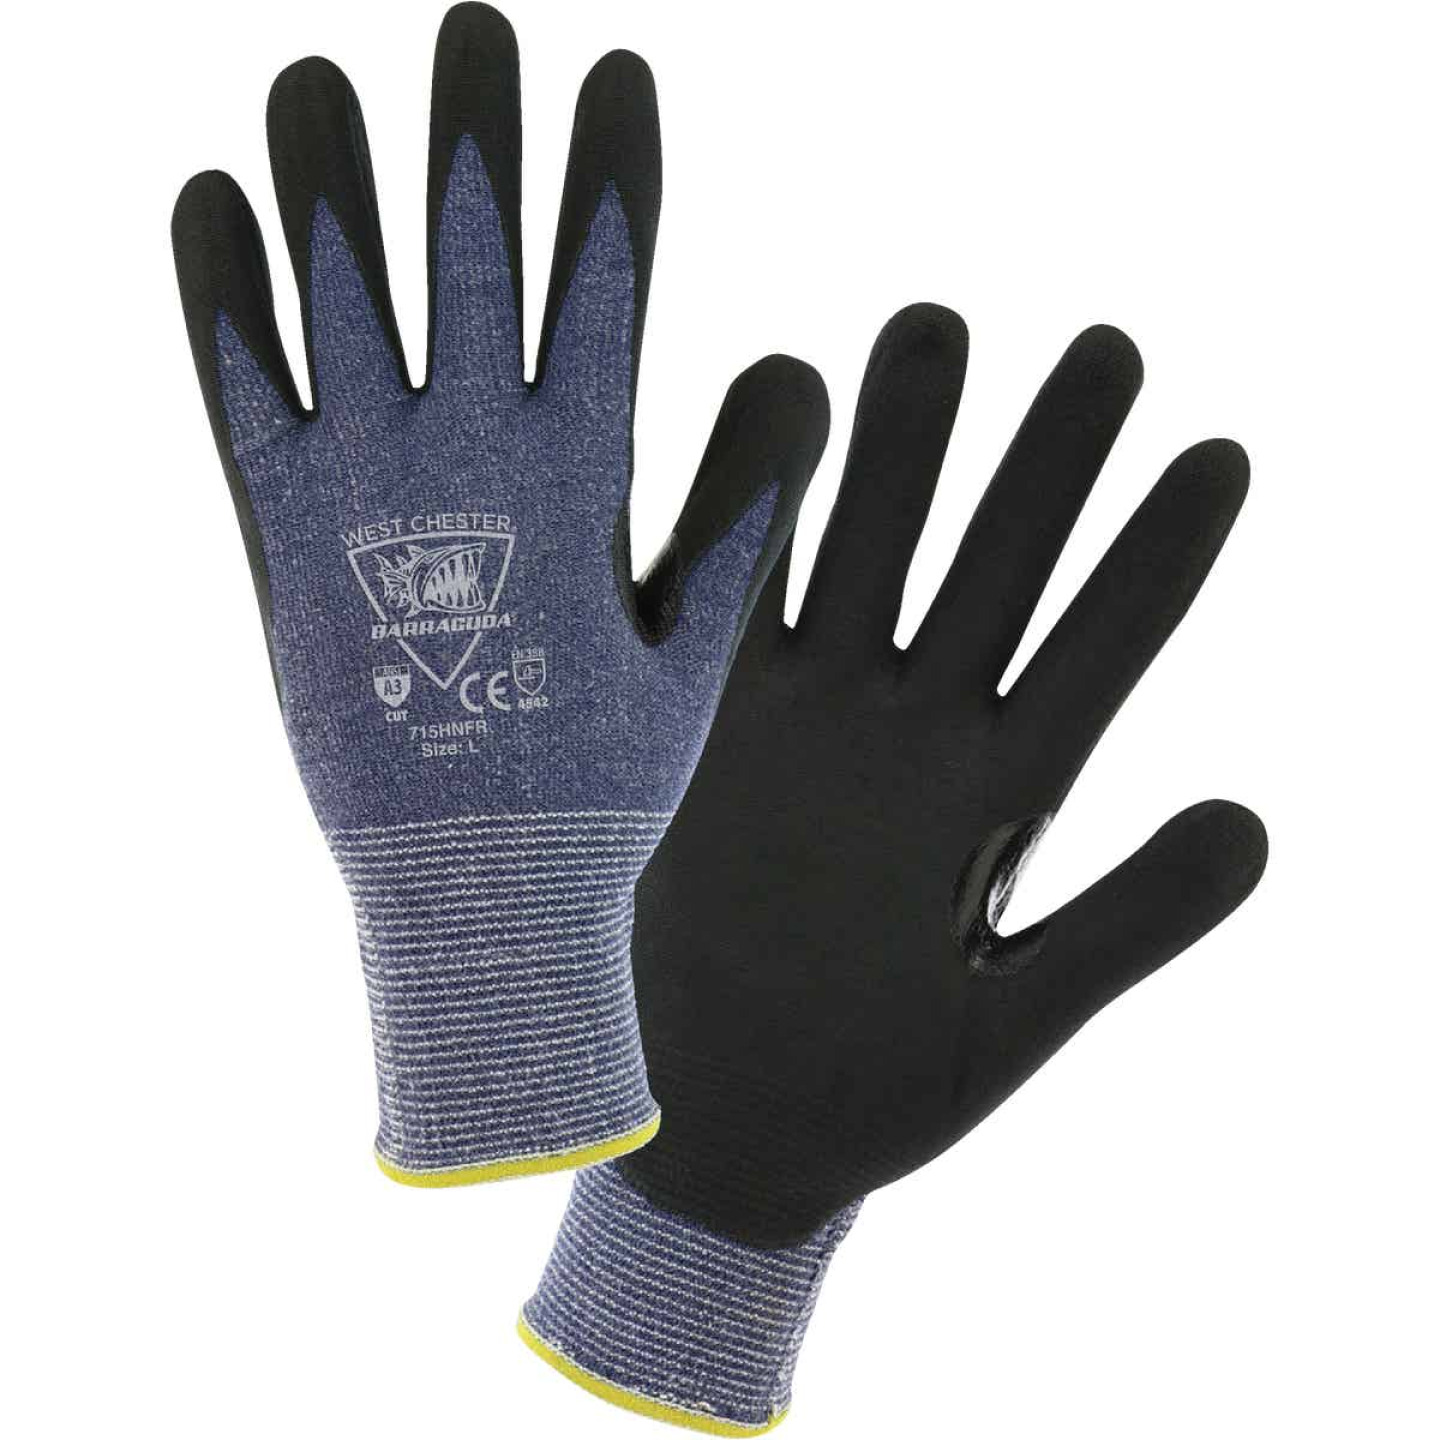 West Chester Protective Gear Barracuda Men's Large 15-Gauge Nitrile Coated Glove Image 1